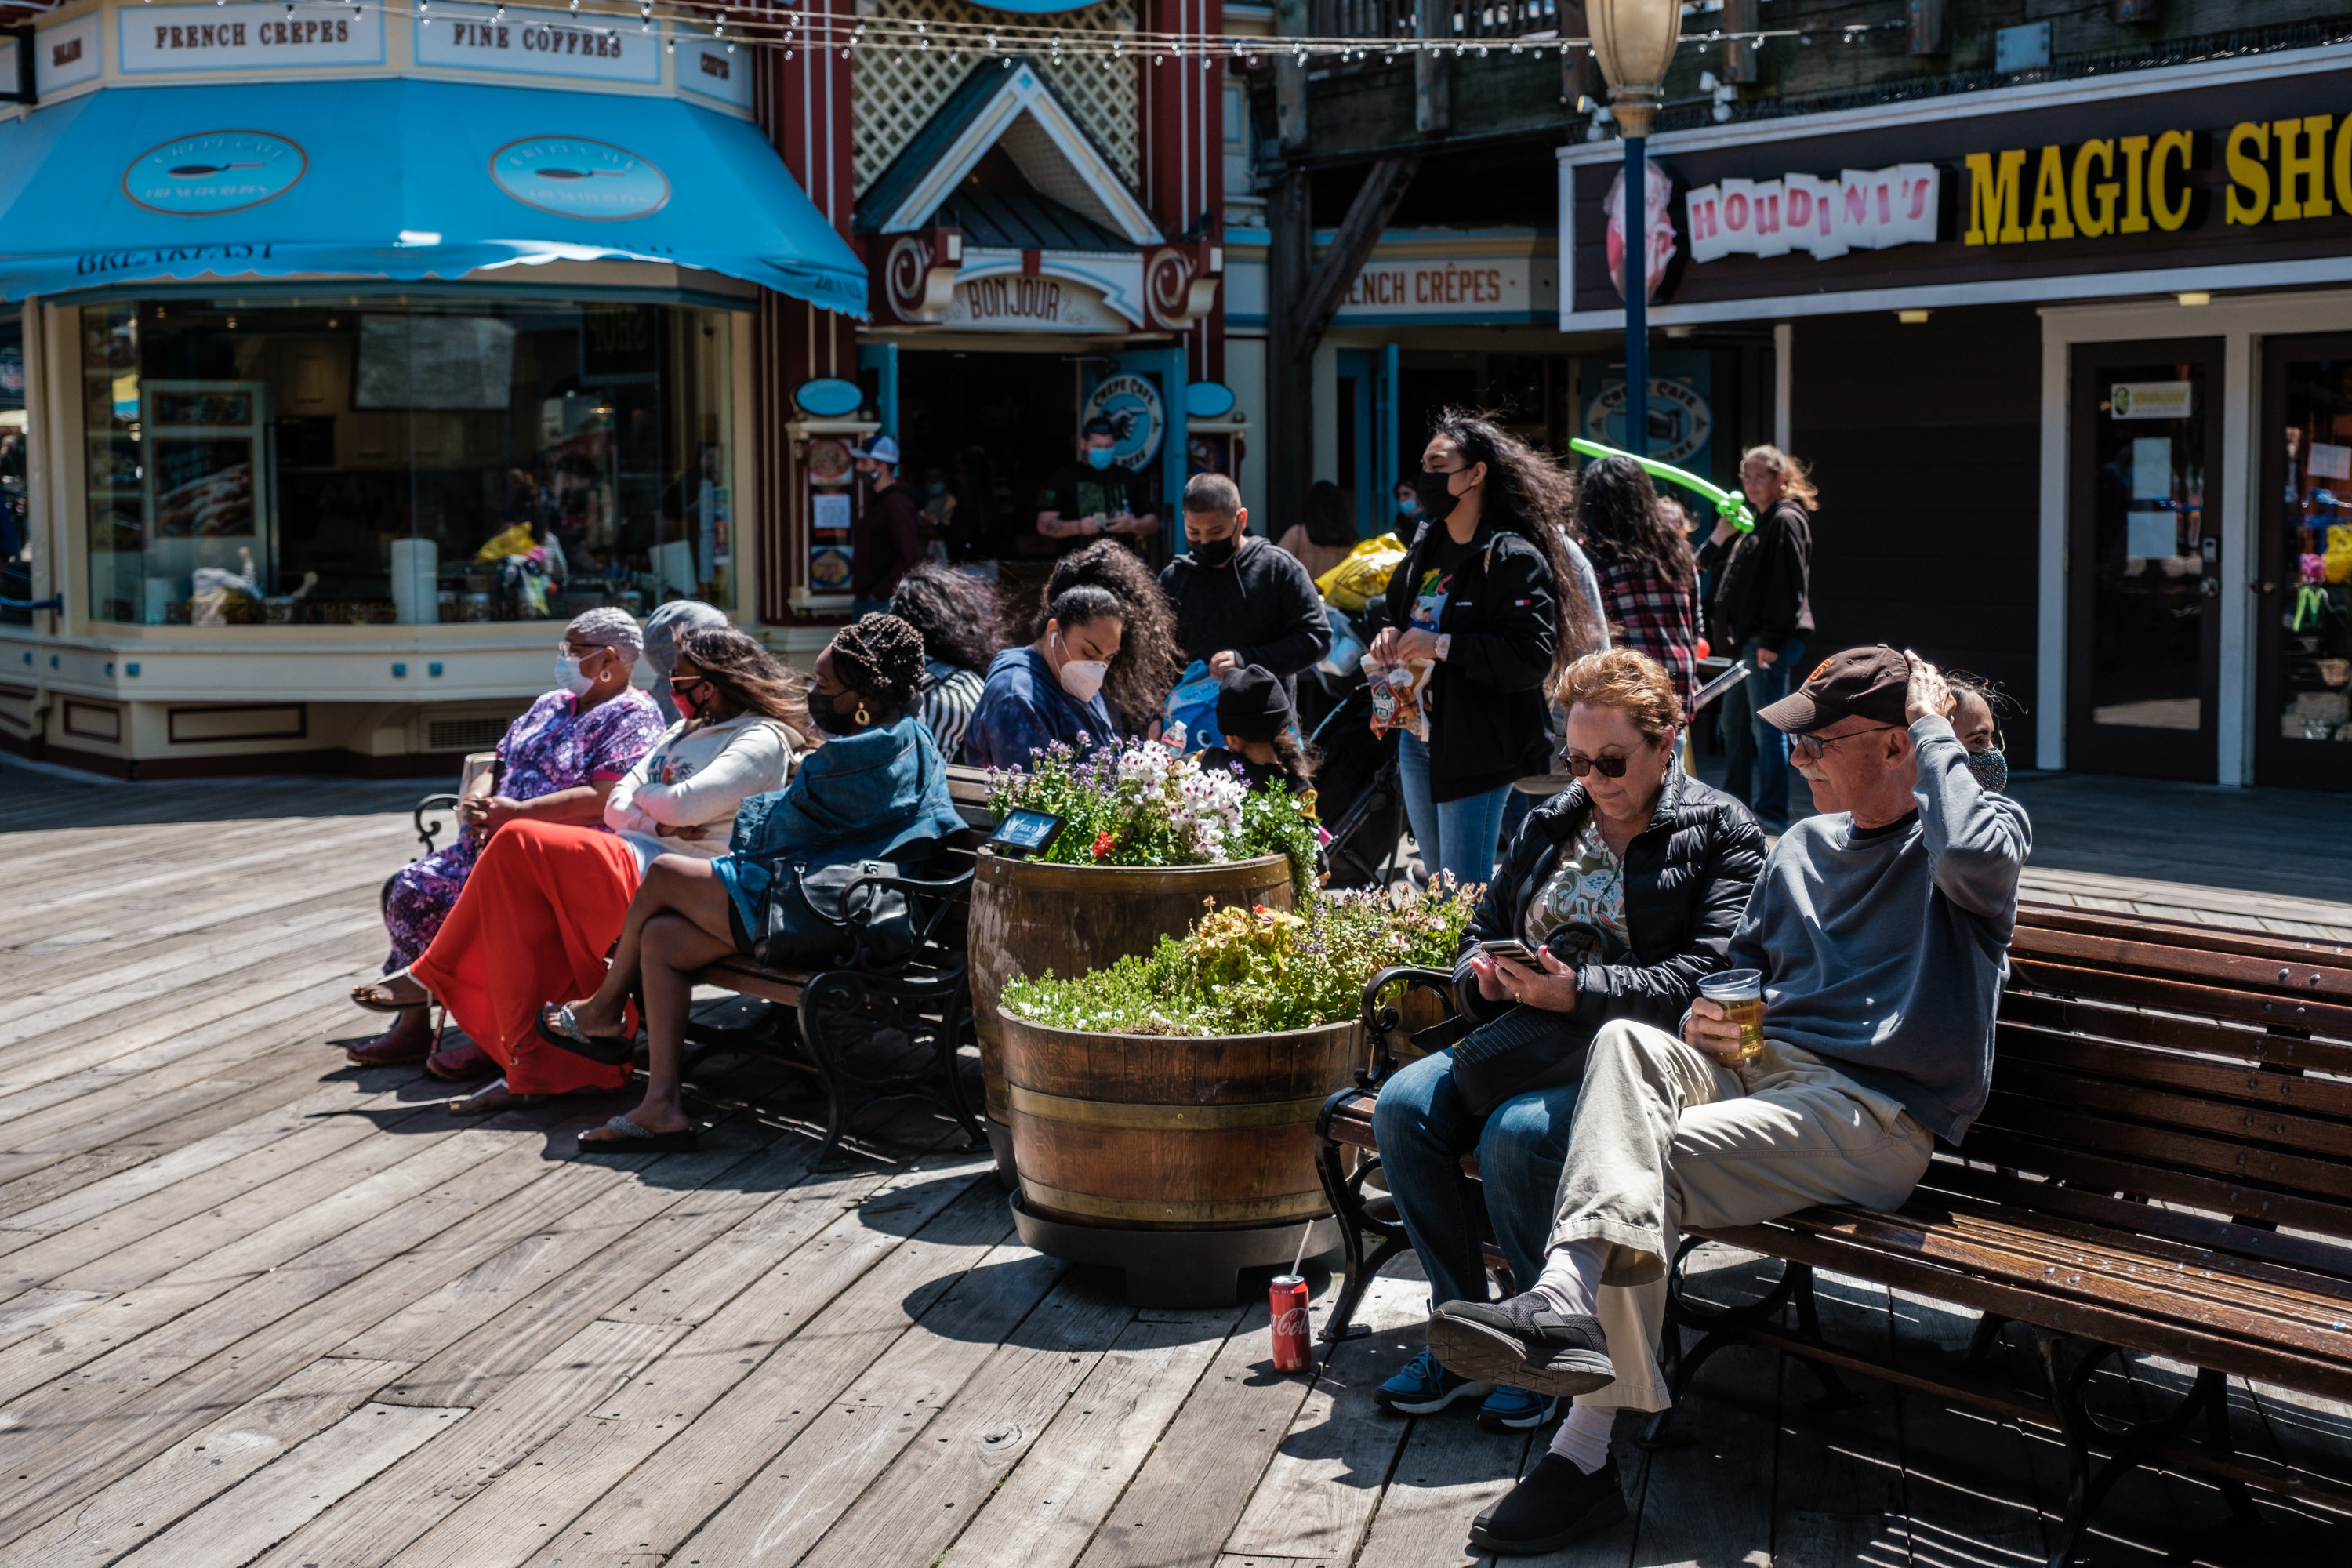 Groups of people sitting on benches in the sunshine on Fisherman's Wharf, some are unmasked